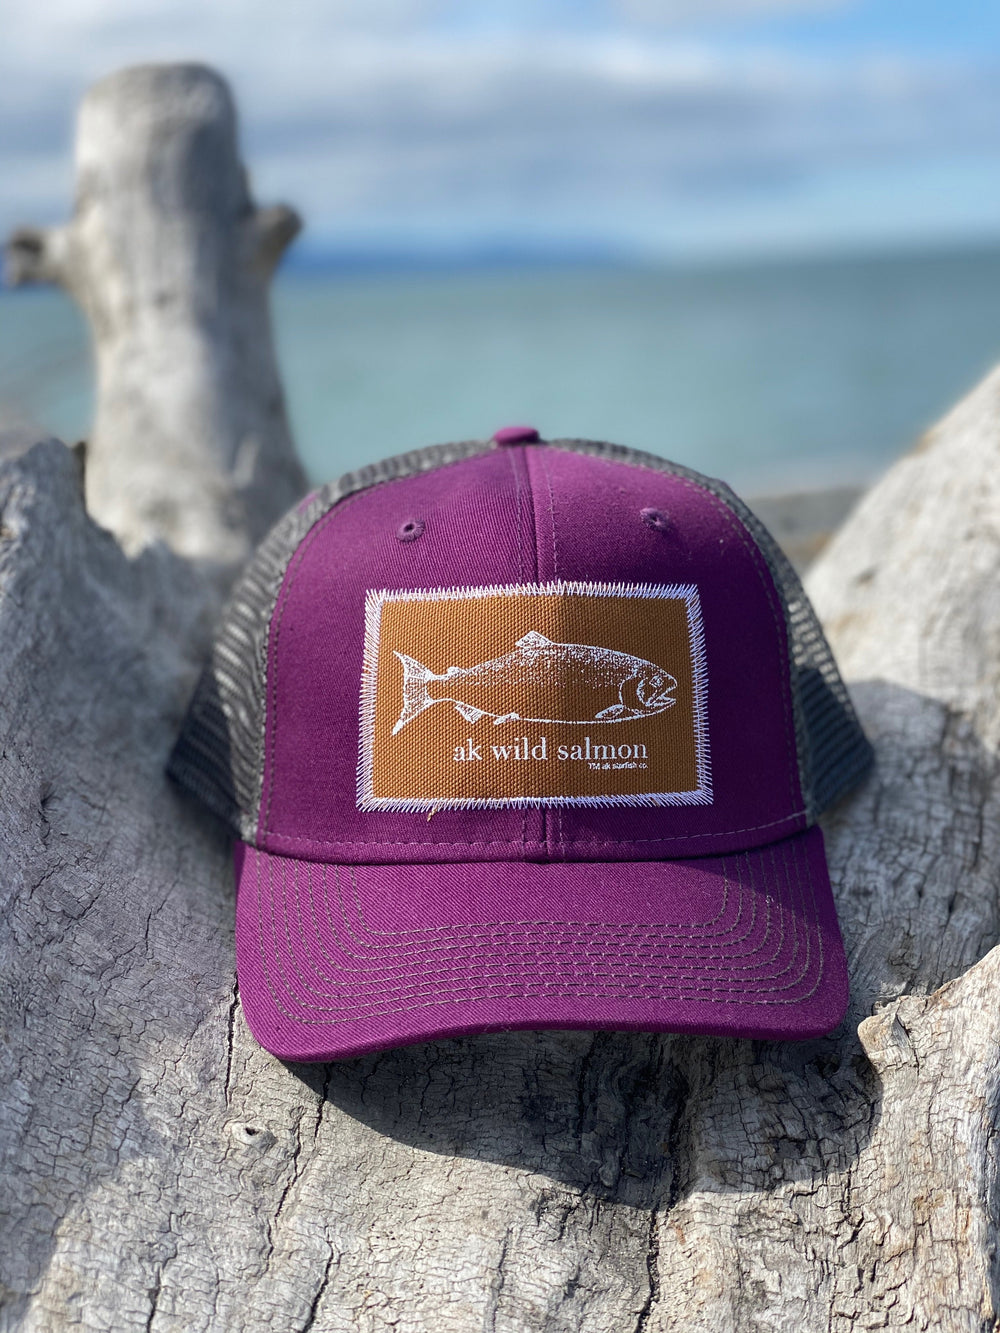 Beach Mussel Shell and Slate AK Wild Salmon Patch Hat $35.00